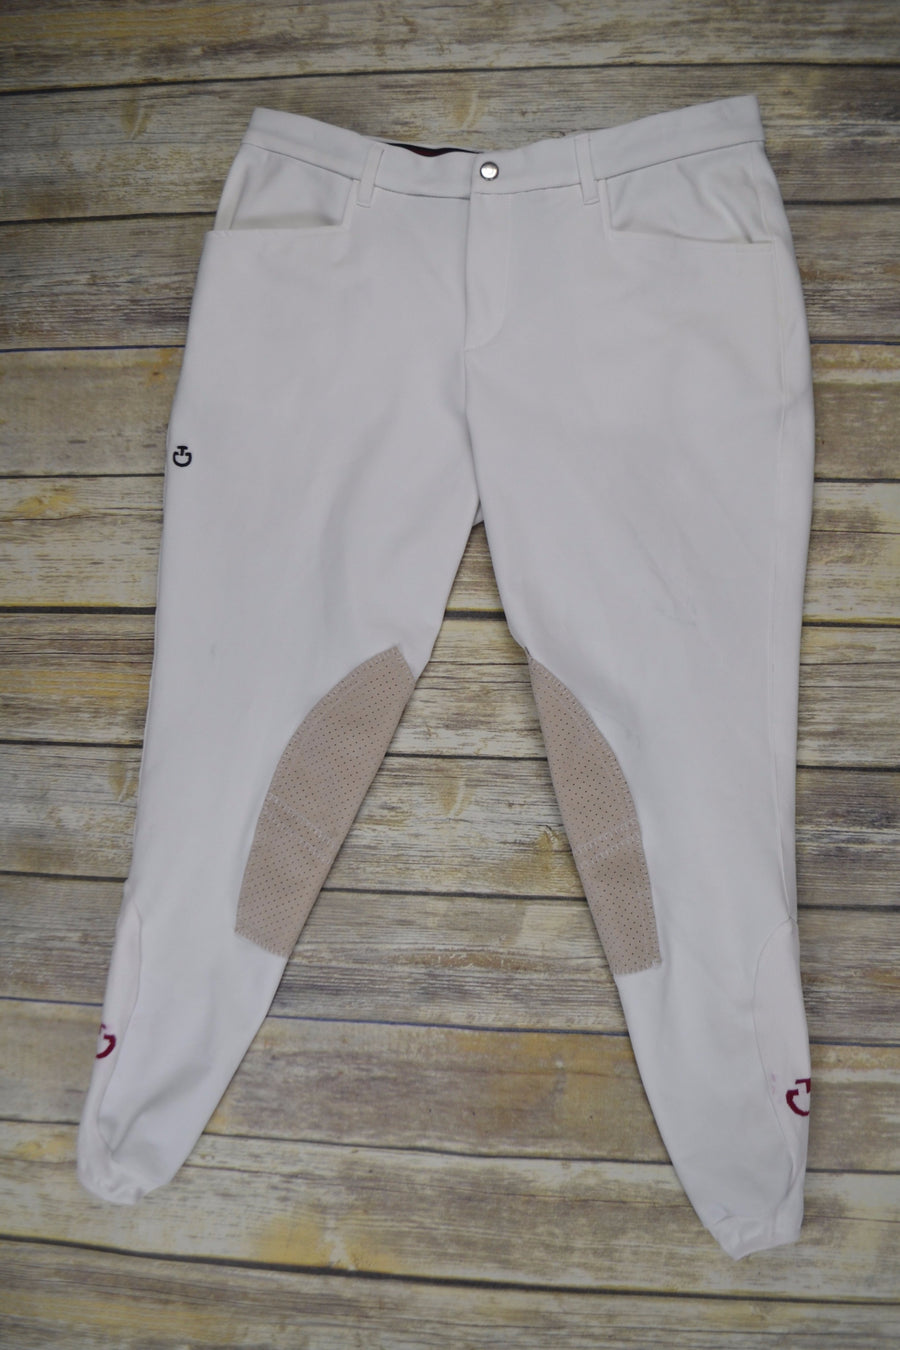 Cavalleria Toscana Perforated Knee Patch Breech in White - Front View